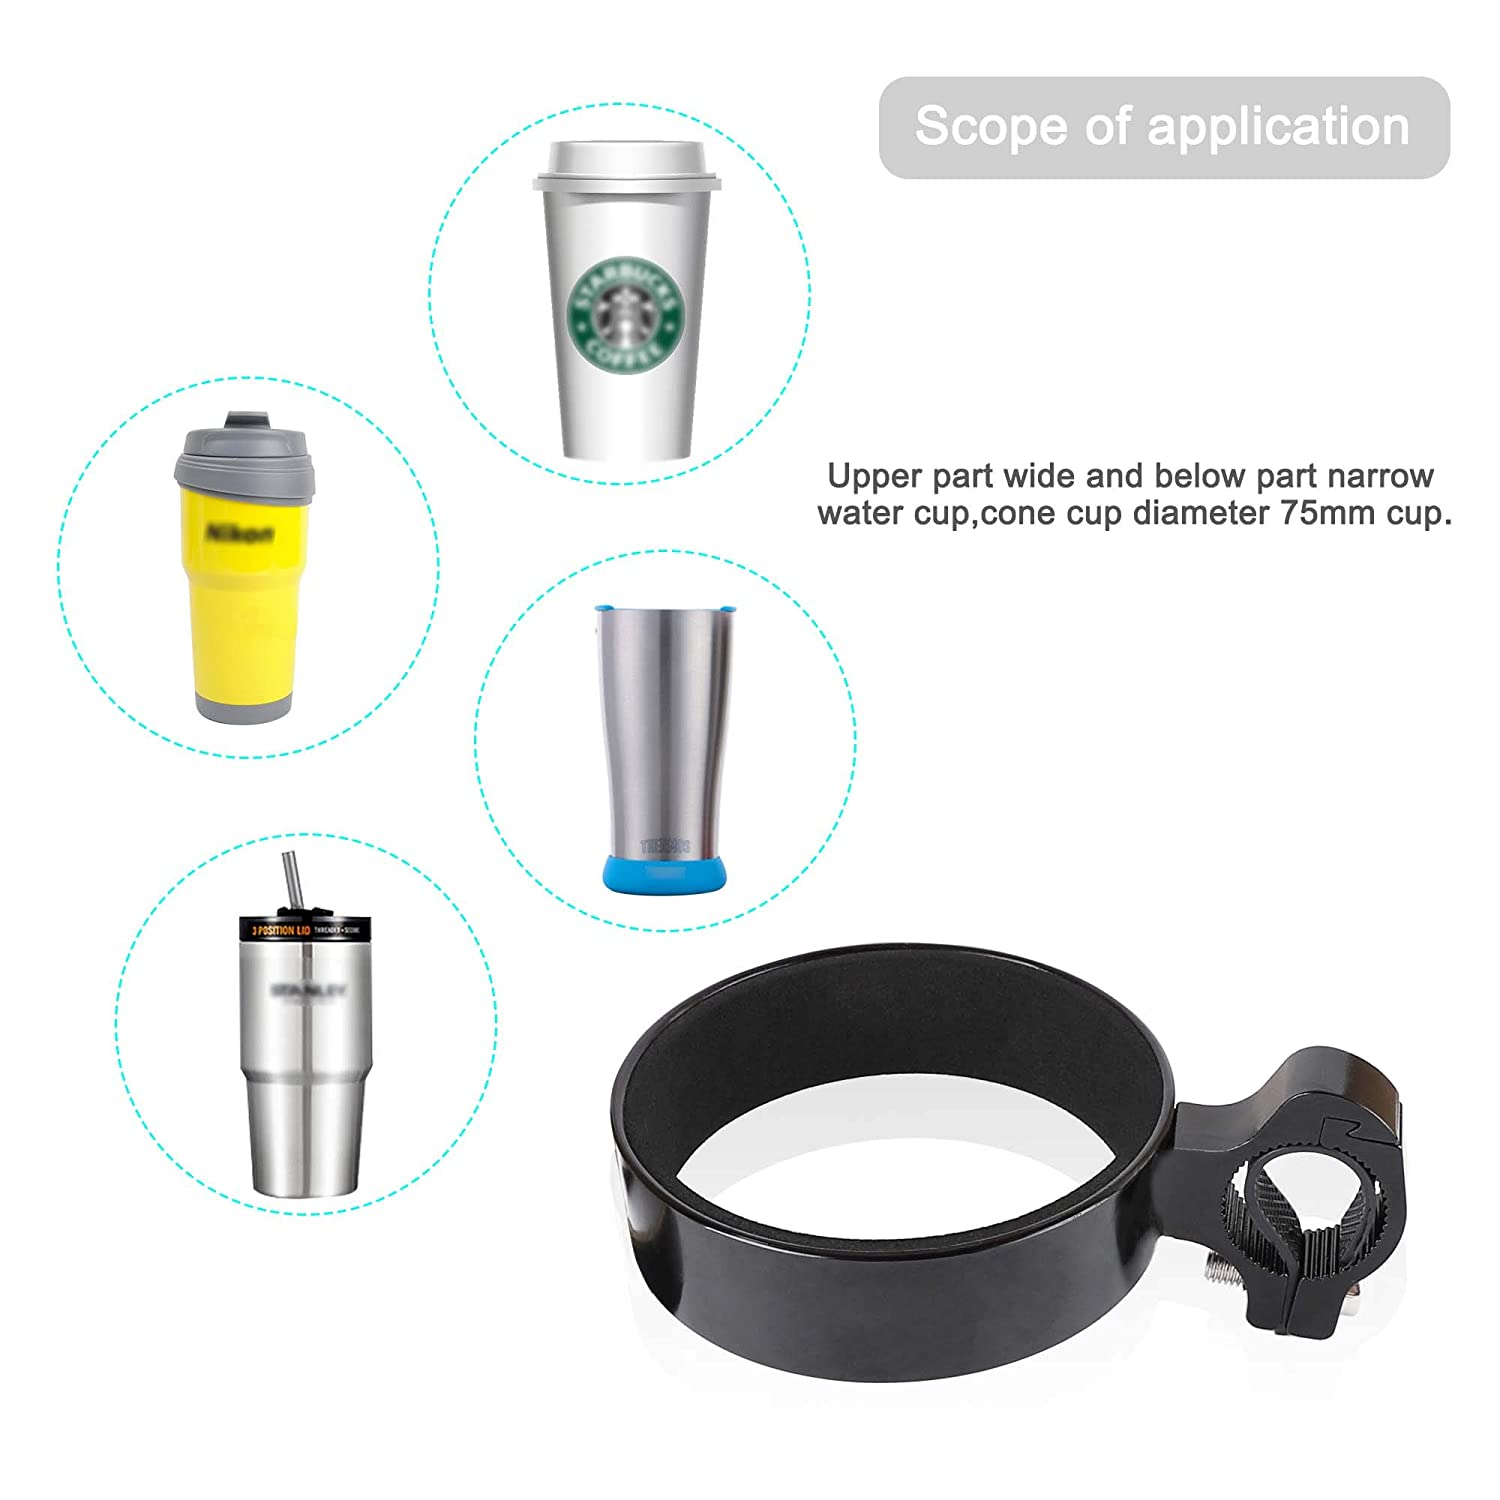 Atuka Handlebar Drink Holder Cup Bottle Holder Water Bottle Cage Aluminum Alloy Coffe Cup Holder For Xiaomi M365 Electric Scooter,Comfort Bikes,Mountain Bikes